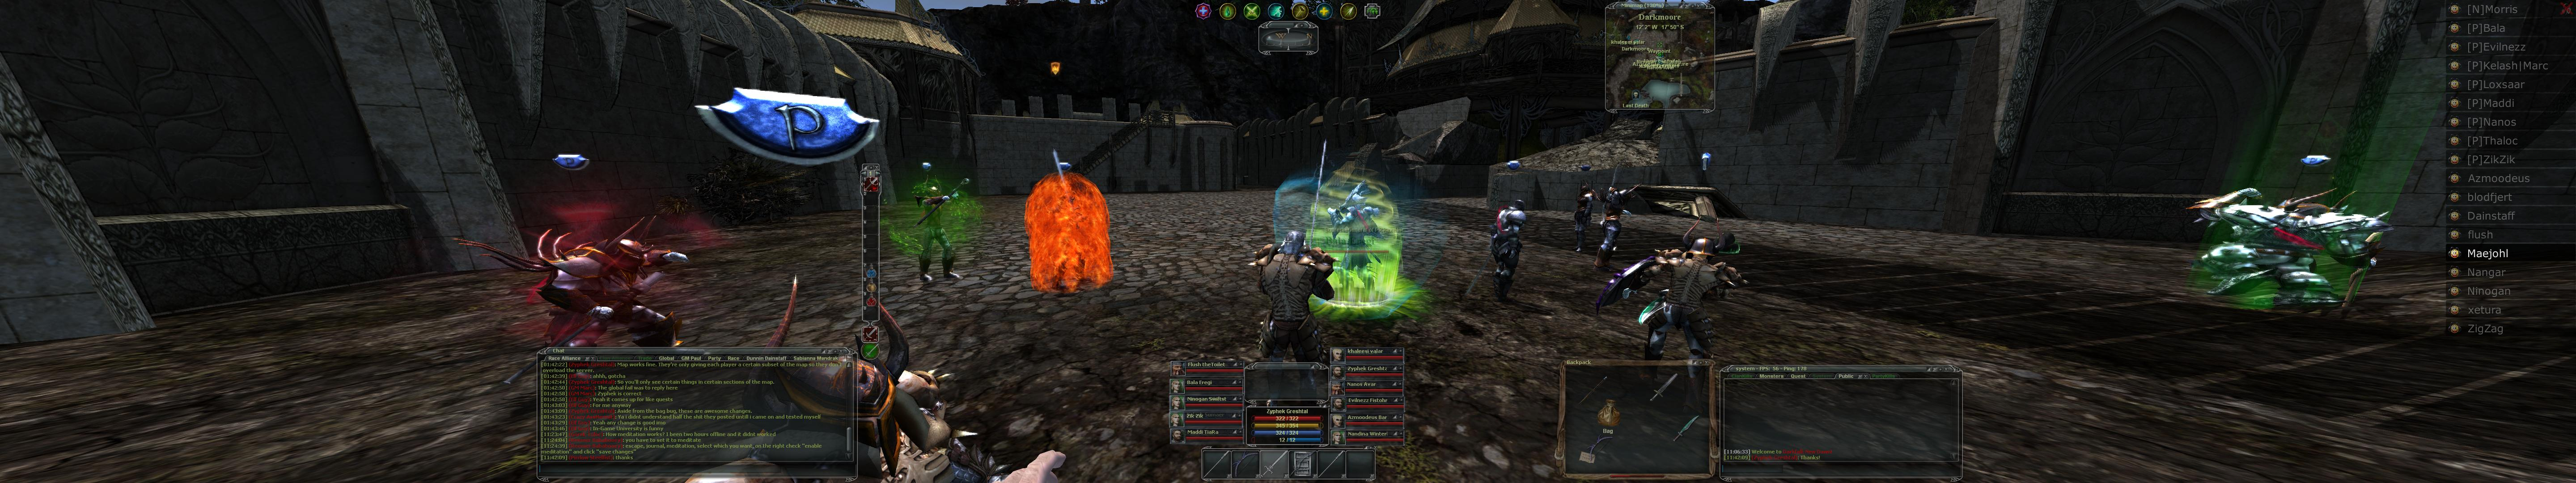 use darkfall 2016-12-07 11-53-17-69.jpg